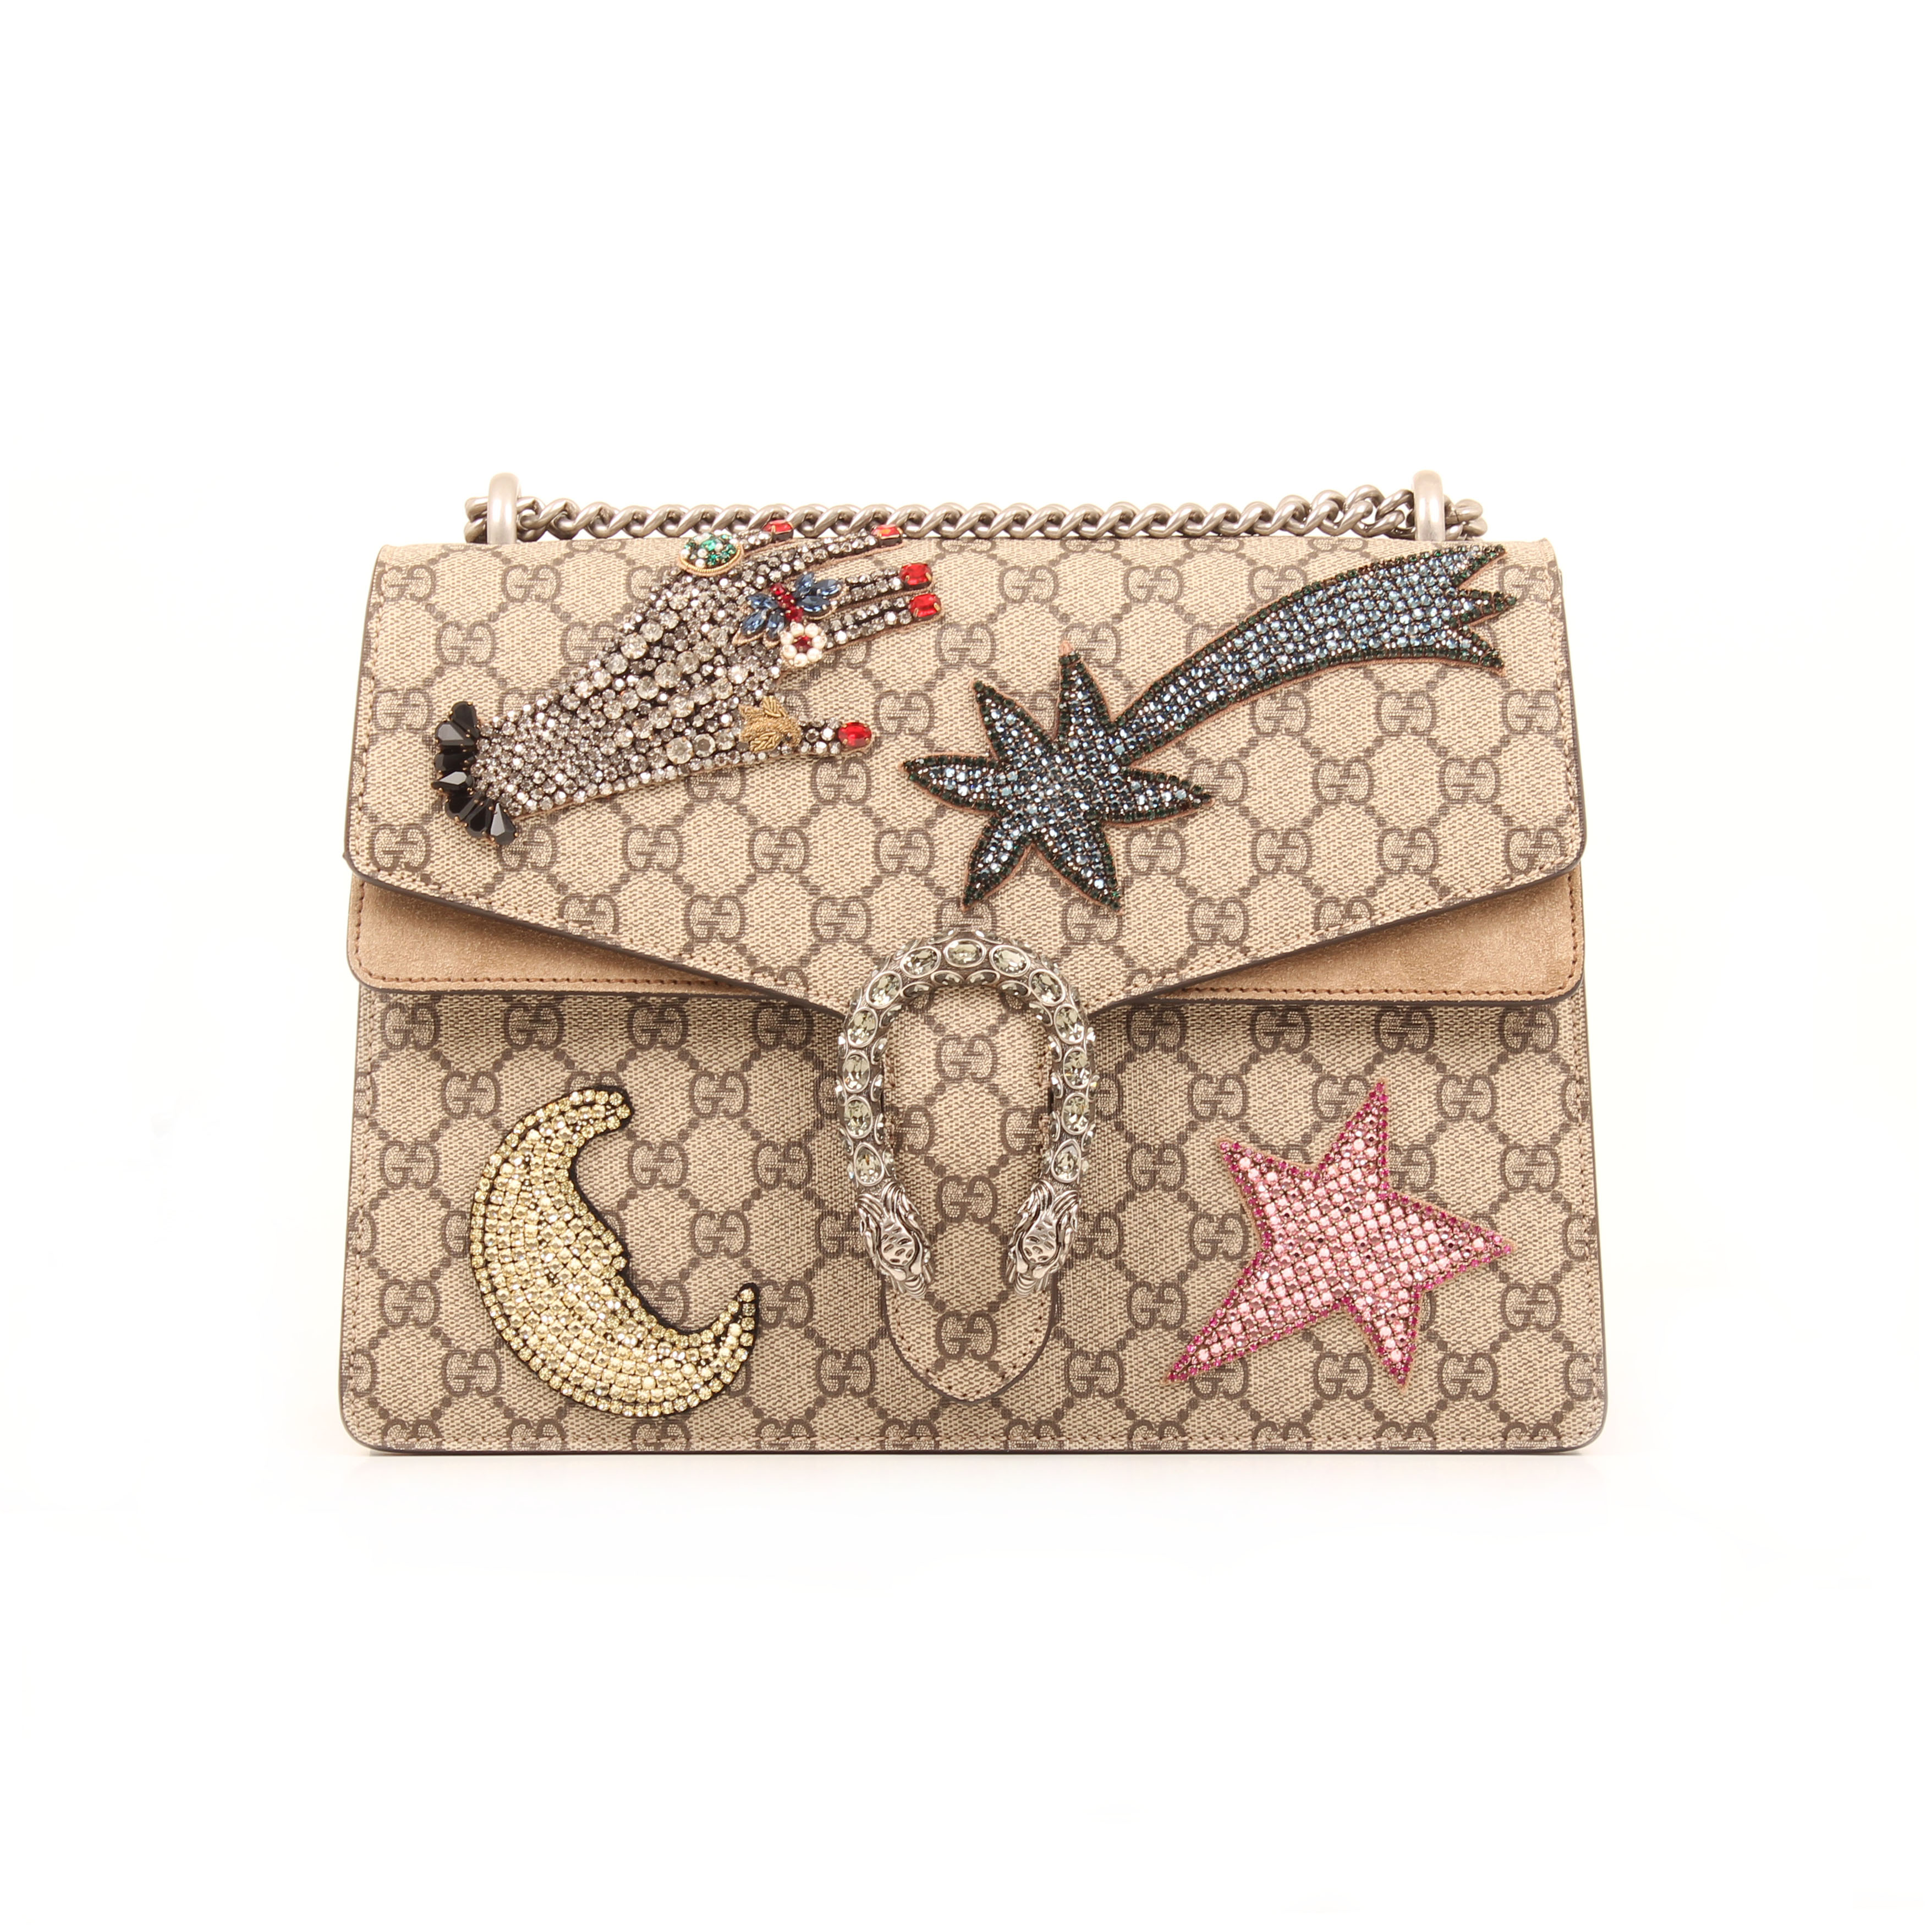 gucci shoulder bag dionysus embroidered rhinestones suede taupe gg supreme canvas front